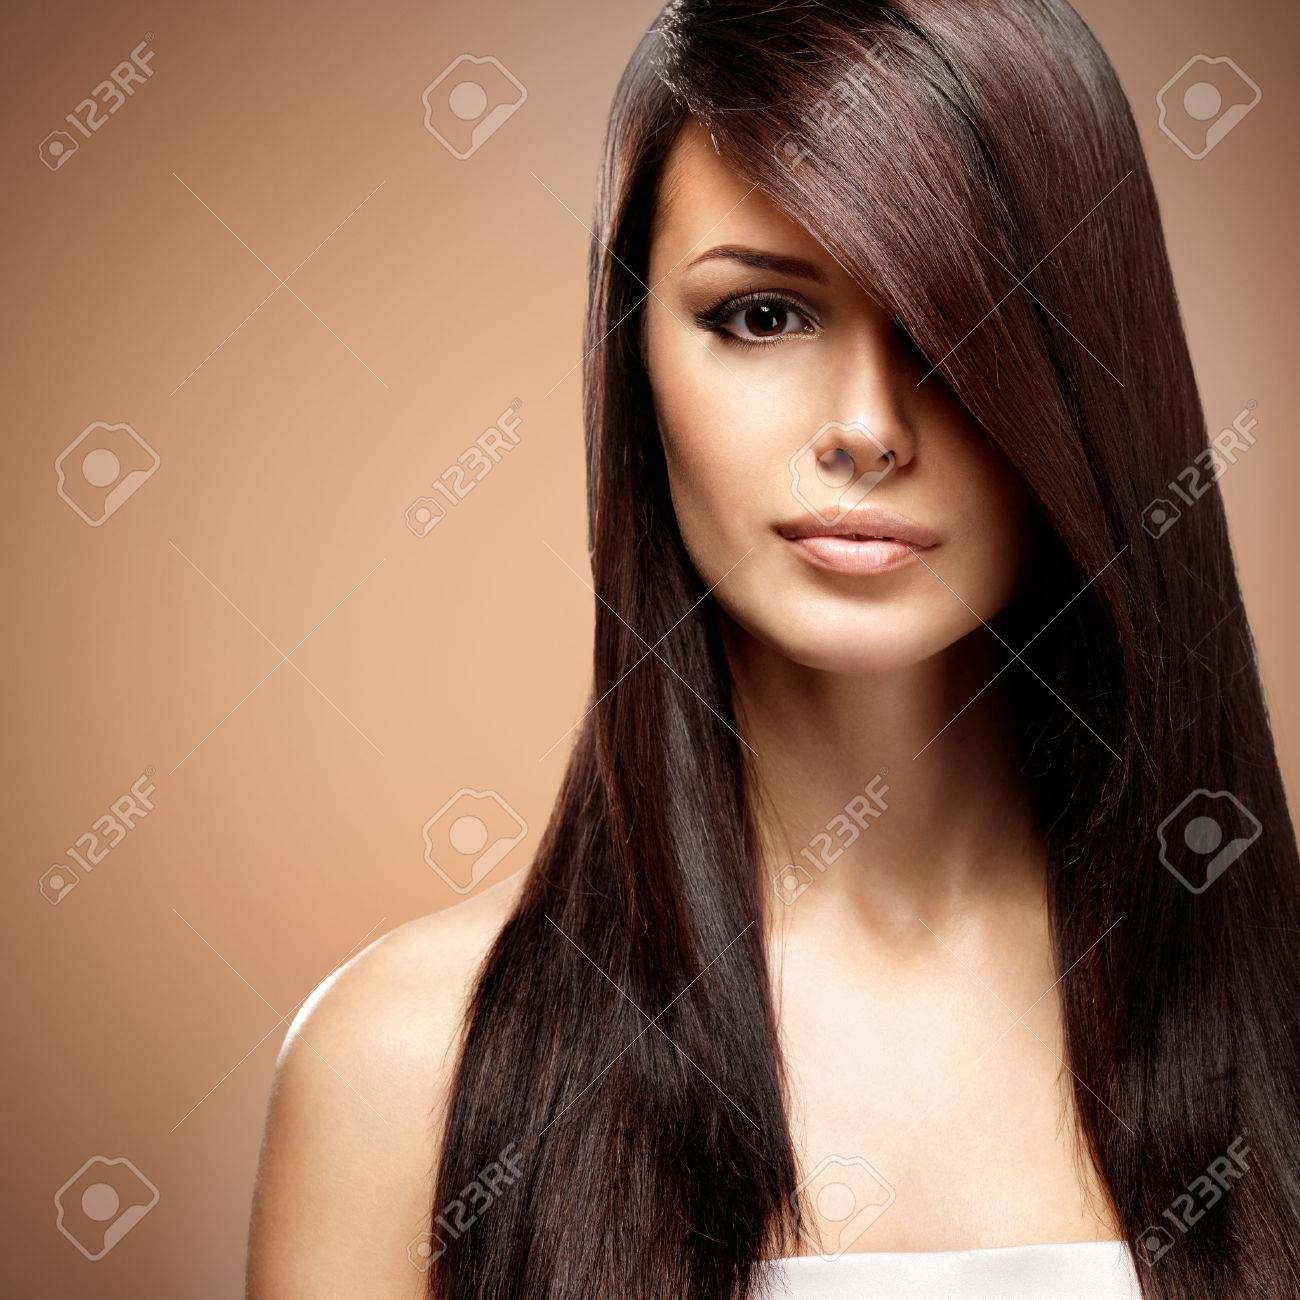 Beautiful young woman with long straight brown hair. Fashion model posing at studio over beige background Banque d'images - 63432208